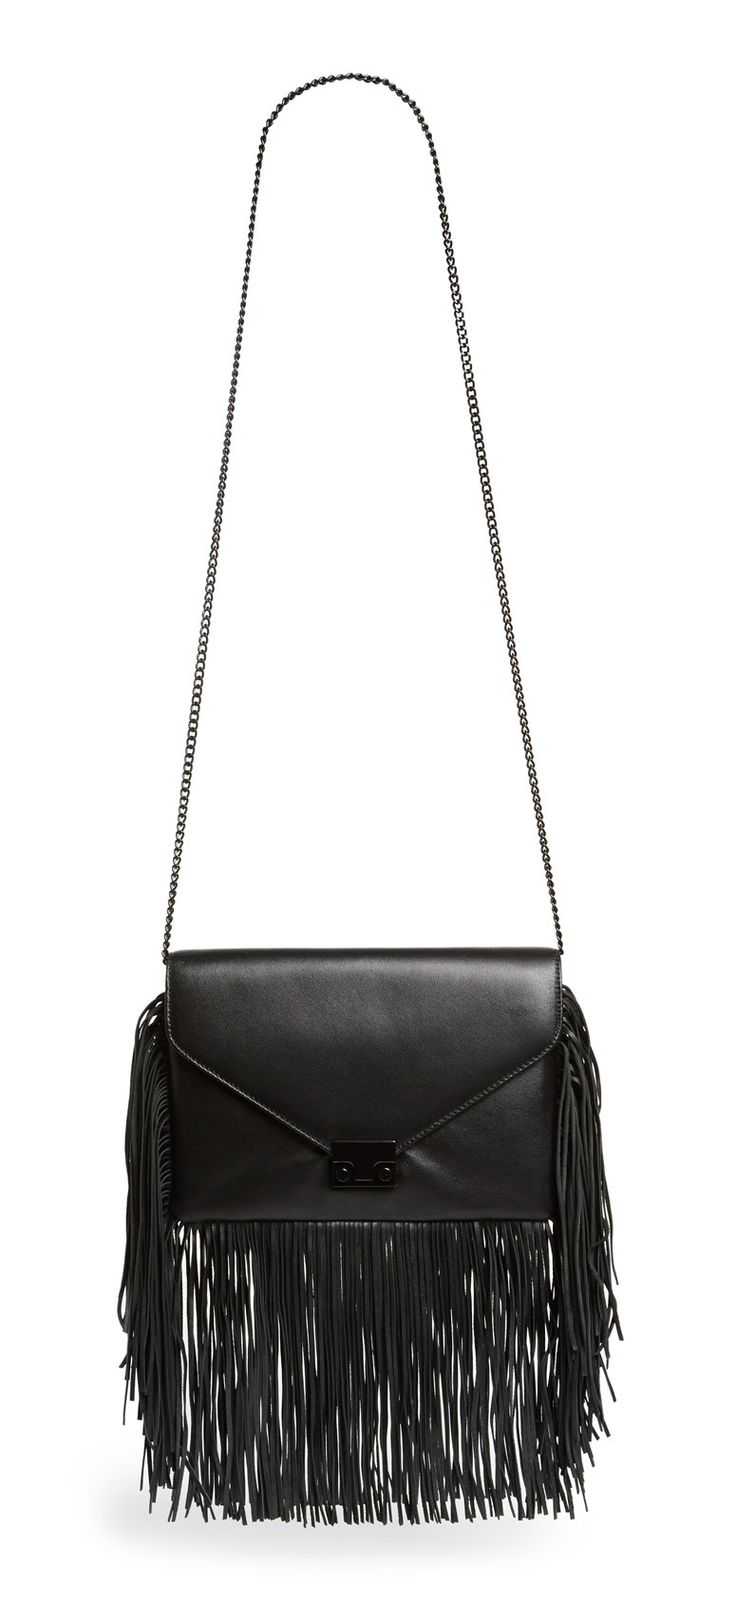 Swingy fringe lends a touch of boho flair to this leather bag that's perfect for any free spirited fashionista. Pair with a felt black fedora and a long, fringey cardigan for a fall take on hippie-chic.